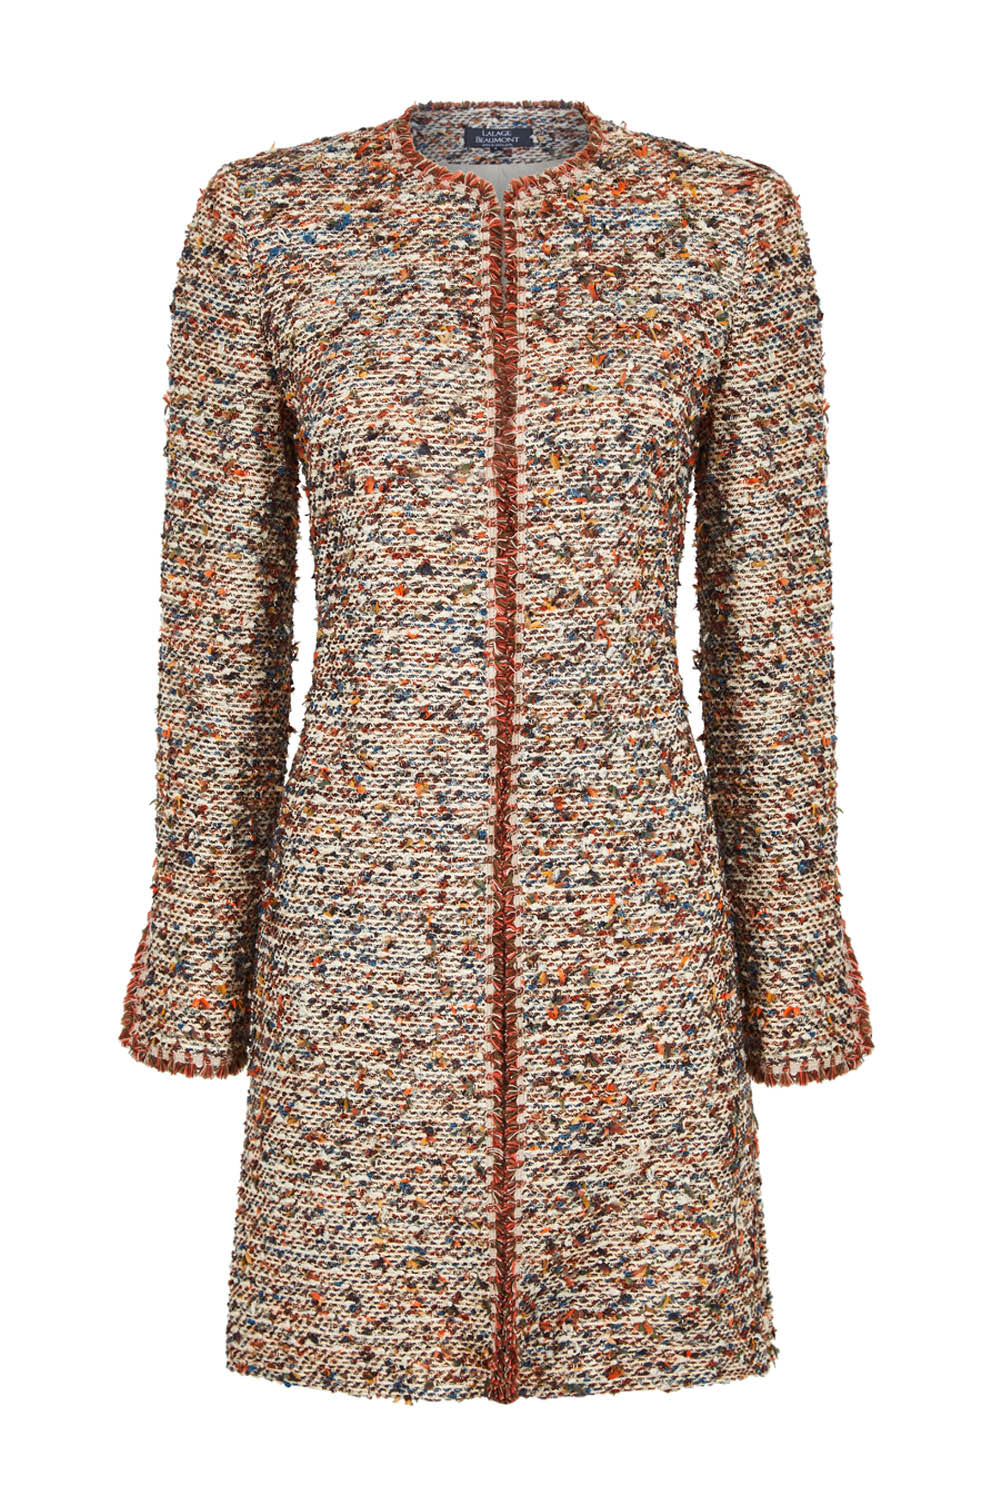 Long English Tweed Jacket in Woodland Colours - Iona